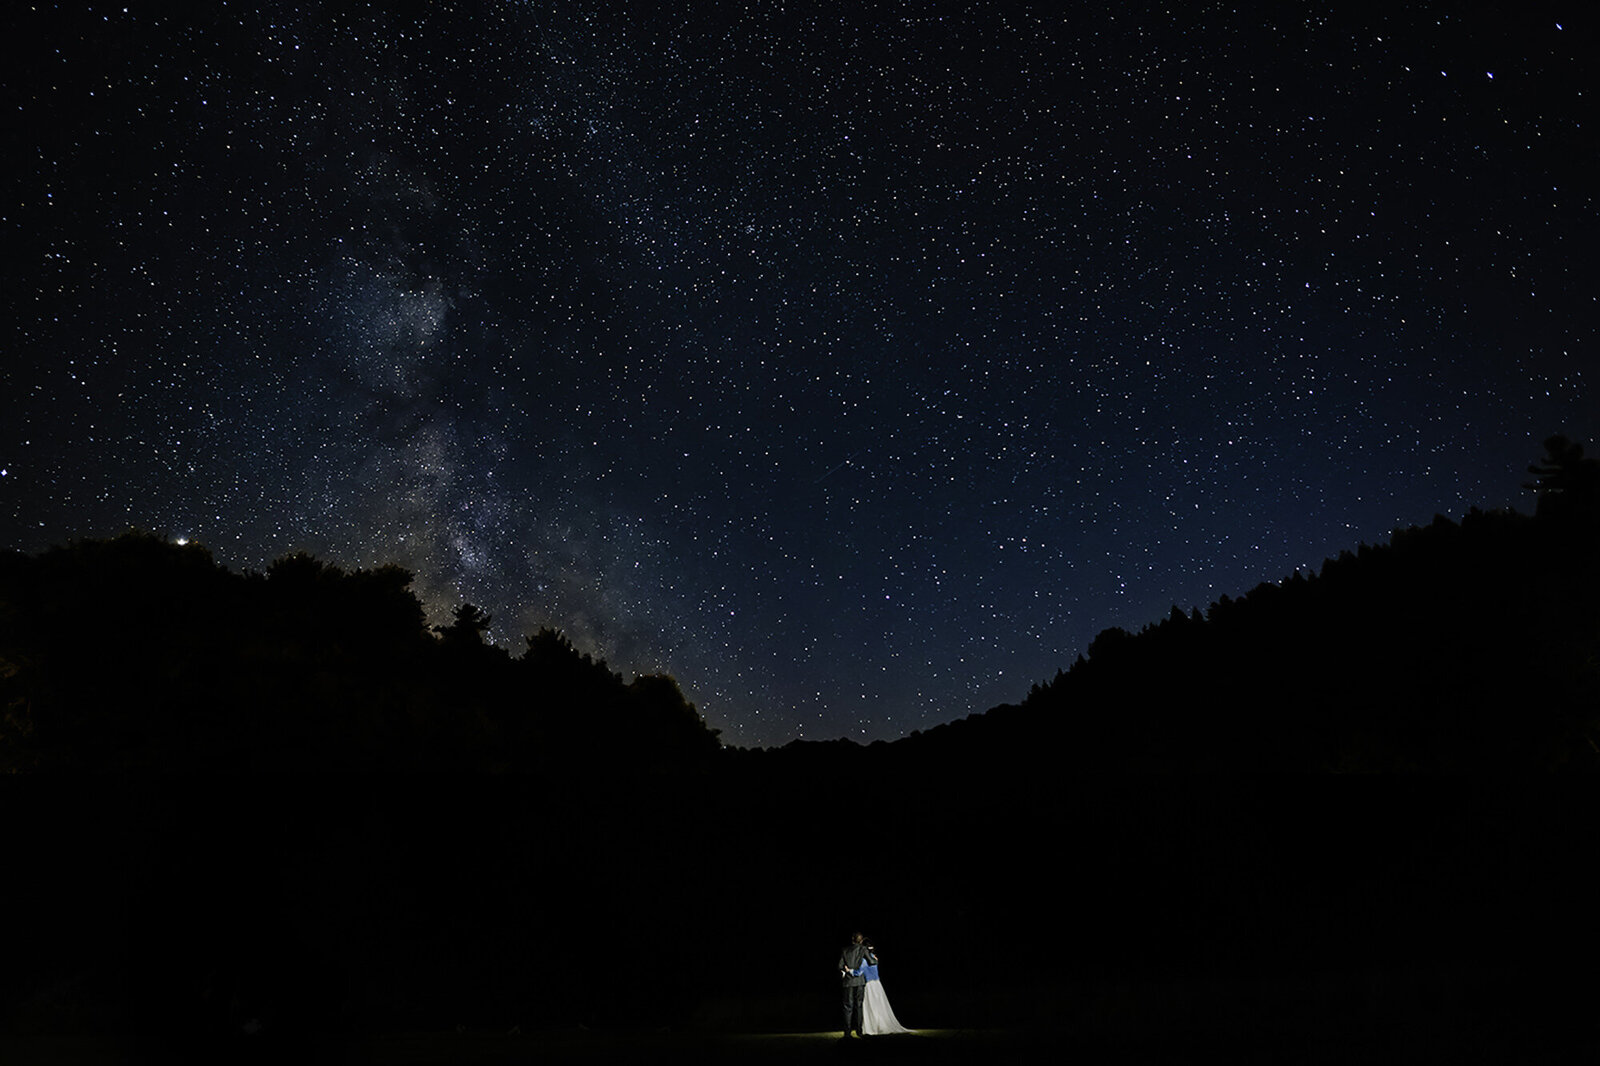 Wedding-portrait-under-milkyway-by-vermont-photographer-andy-madea copy